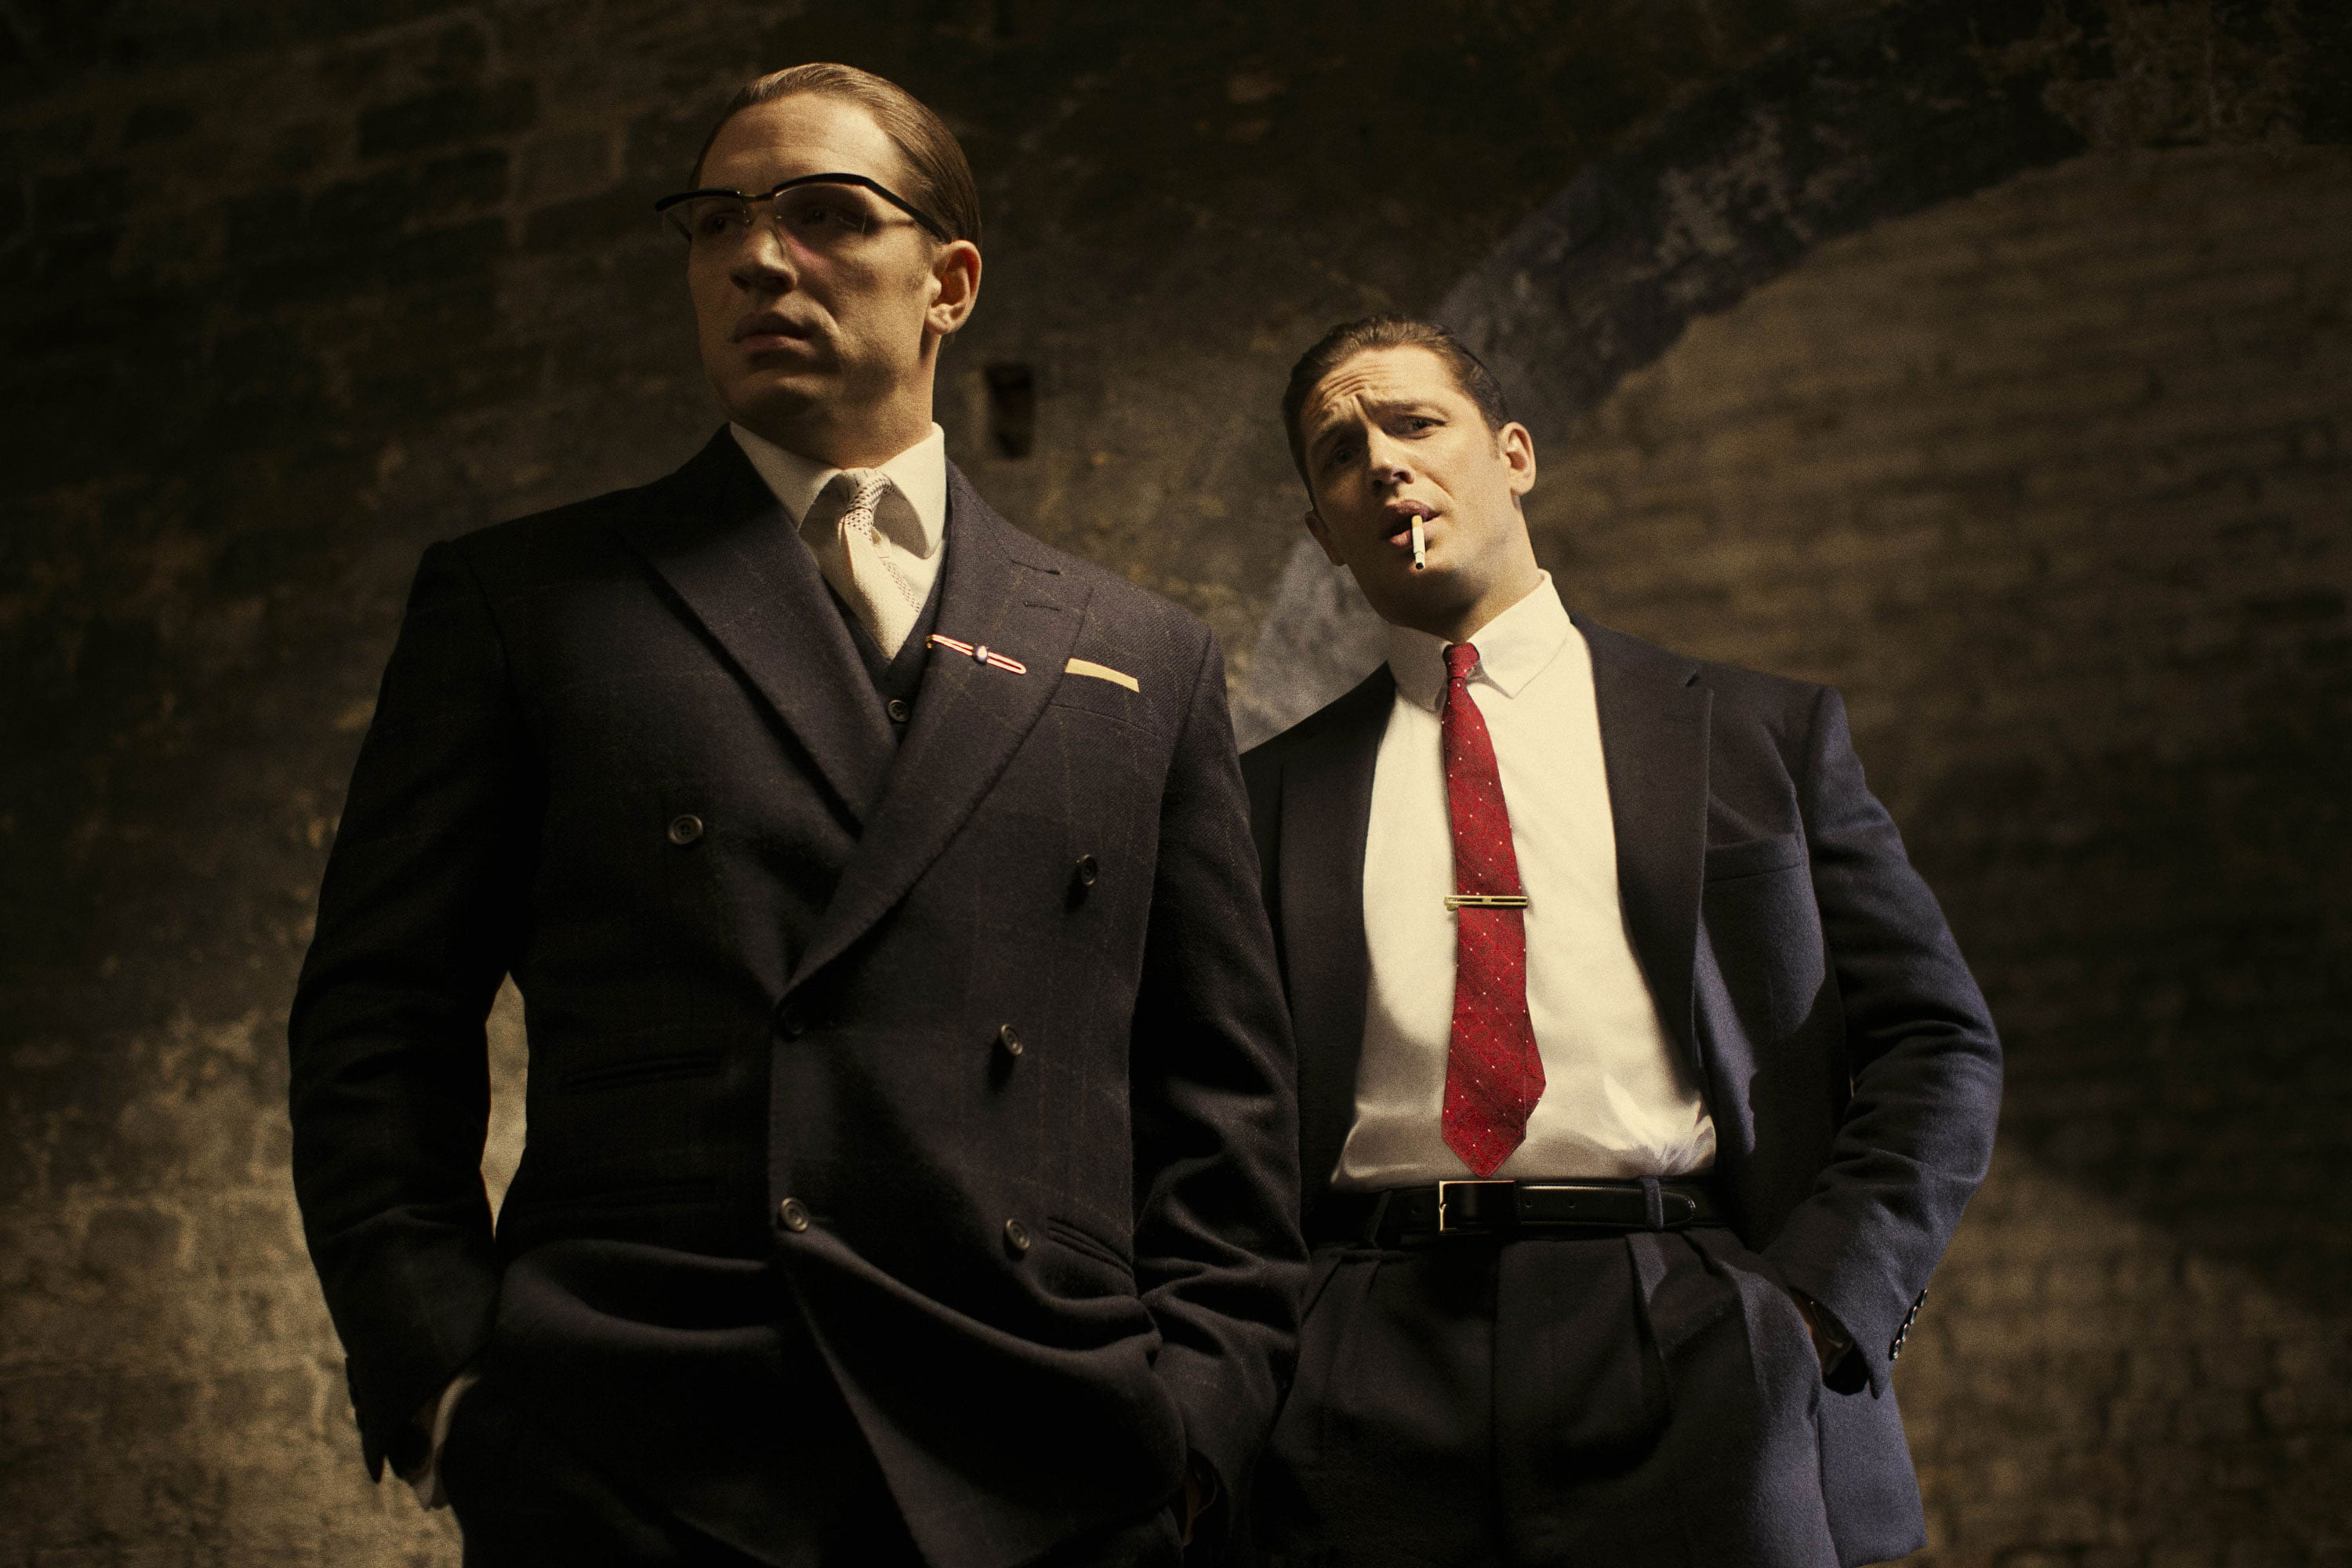 Film Review: The Legend of the Kray gruesome twosome